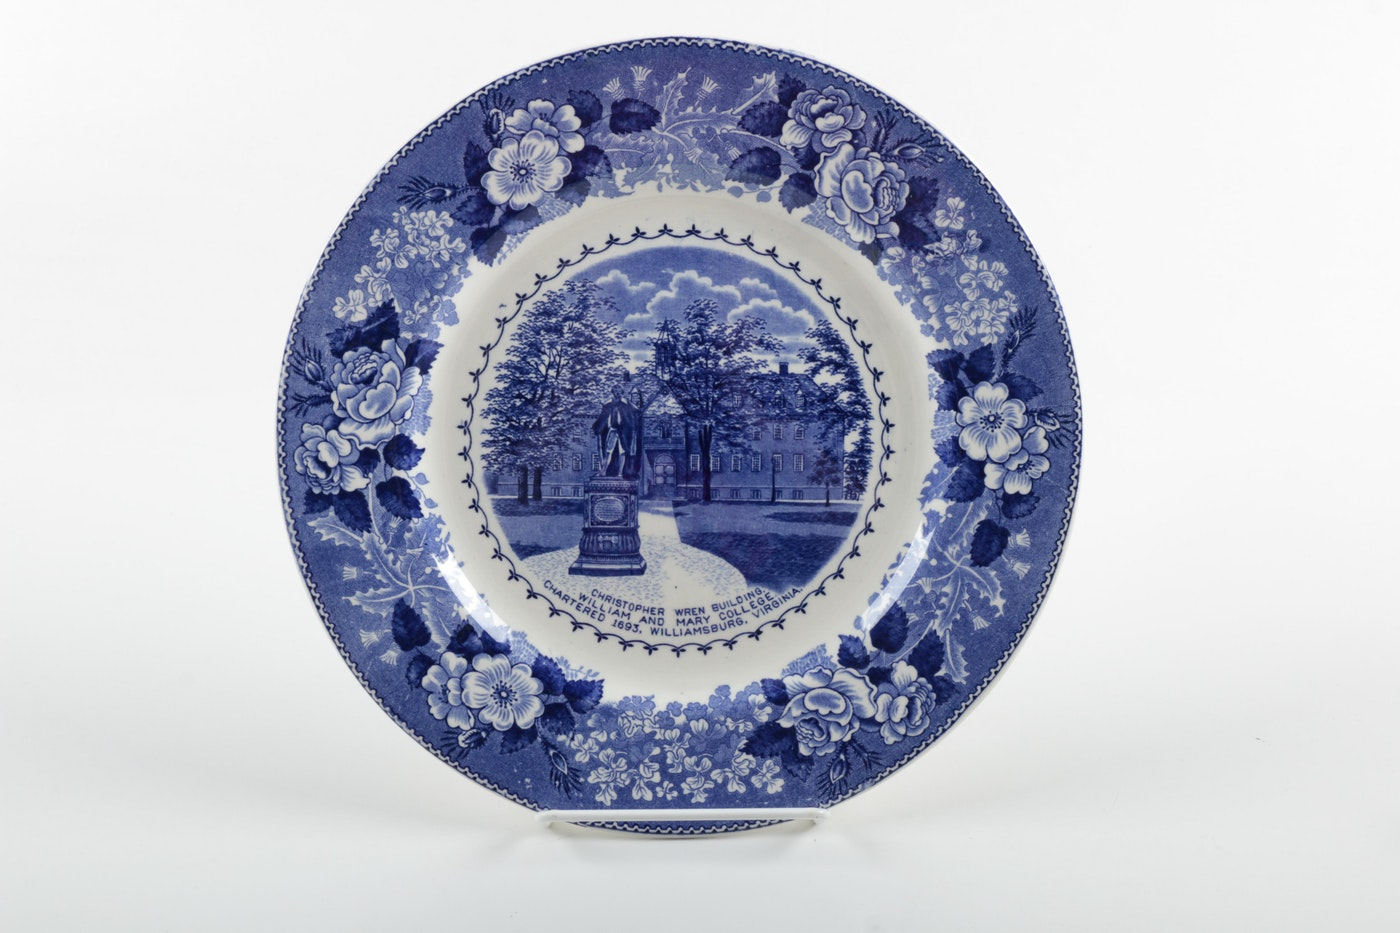 Decorative blue and white plates inculding meissen quot